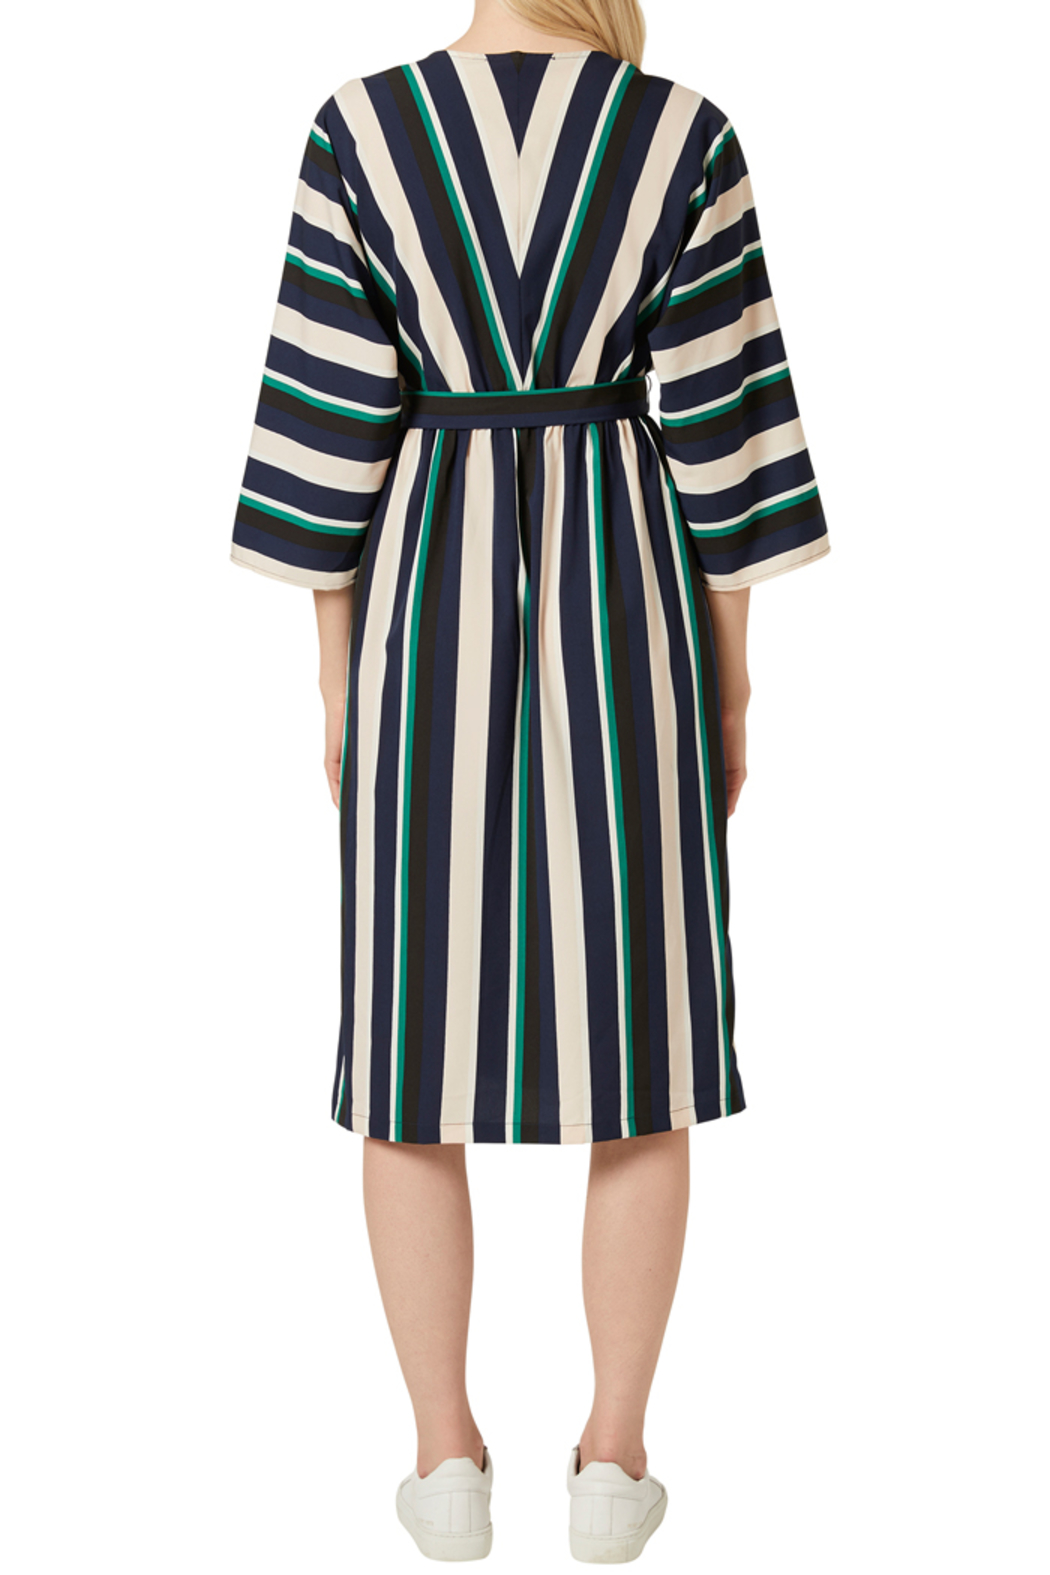 French Connection MULTI STRIPE BELTED DRESS - Back Cropped Image